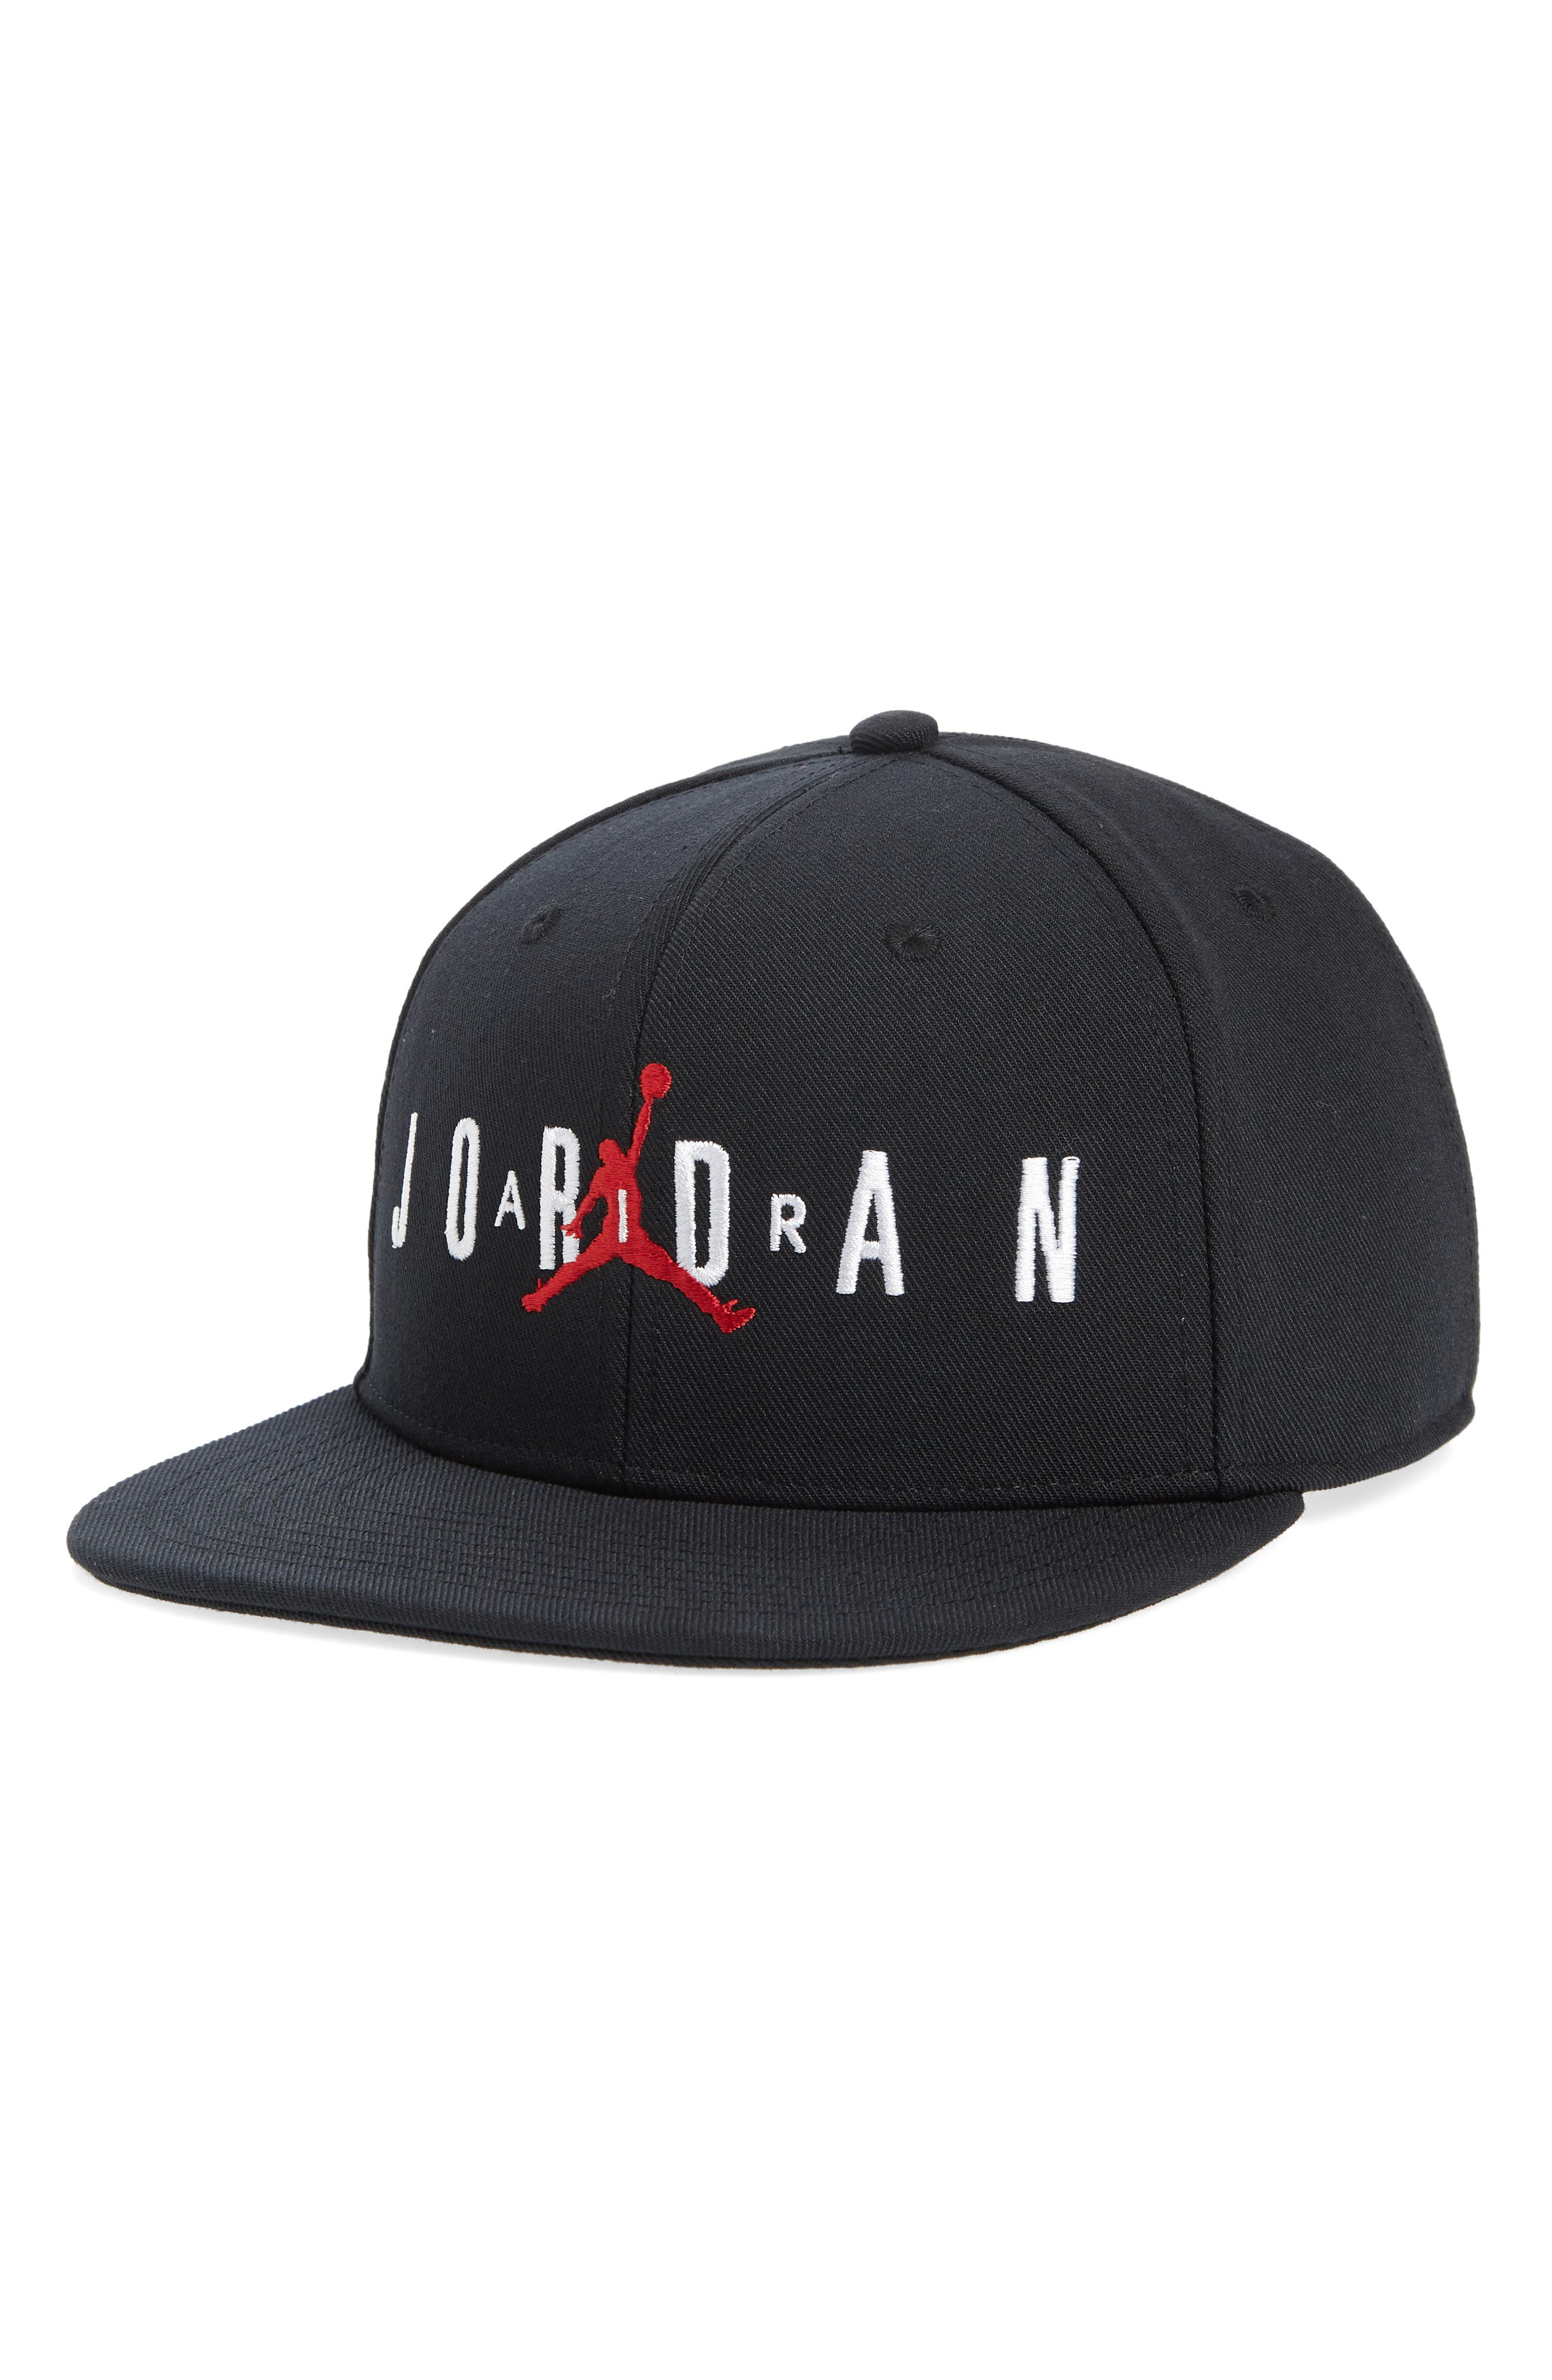 e000c8e4751d1 cheap jordan bhm 2017 hat 7358f 2e2e1  amazon jordan jumpman air baseball  cap kids a0050 551a5